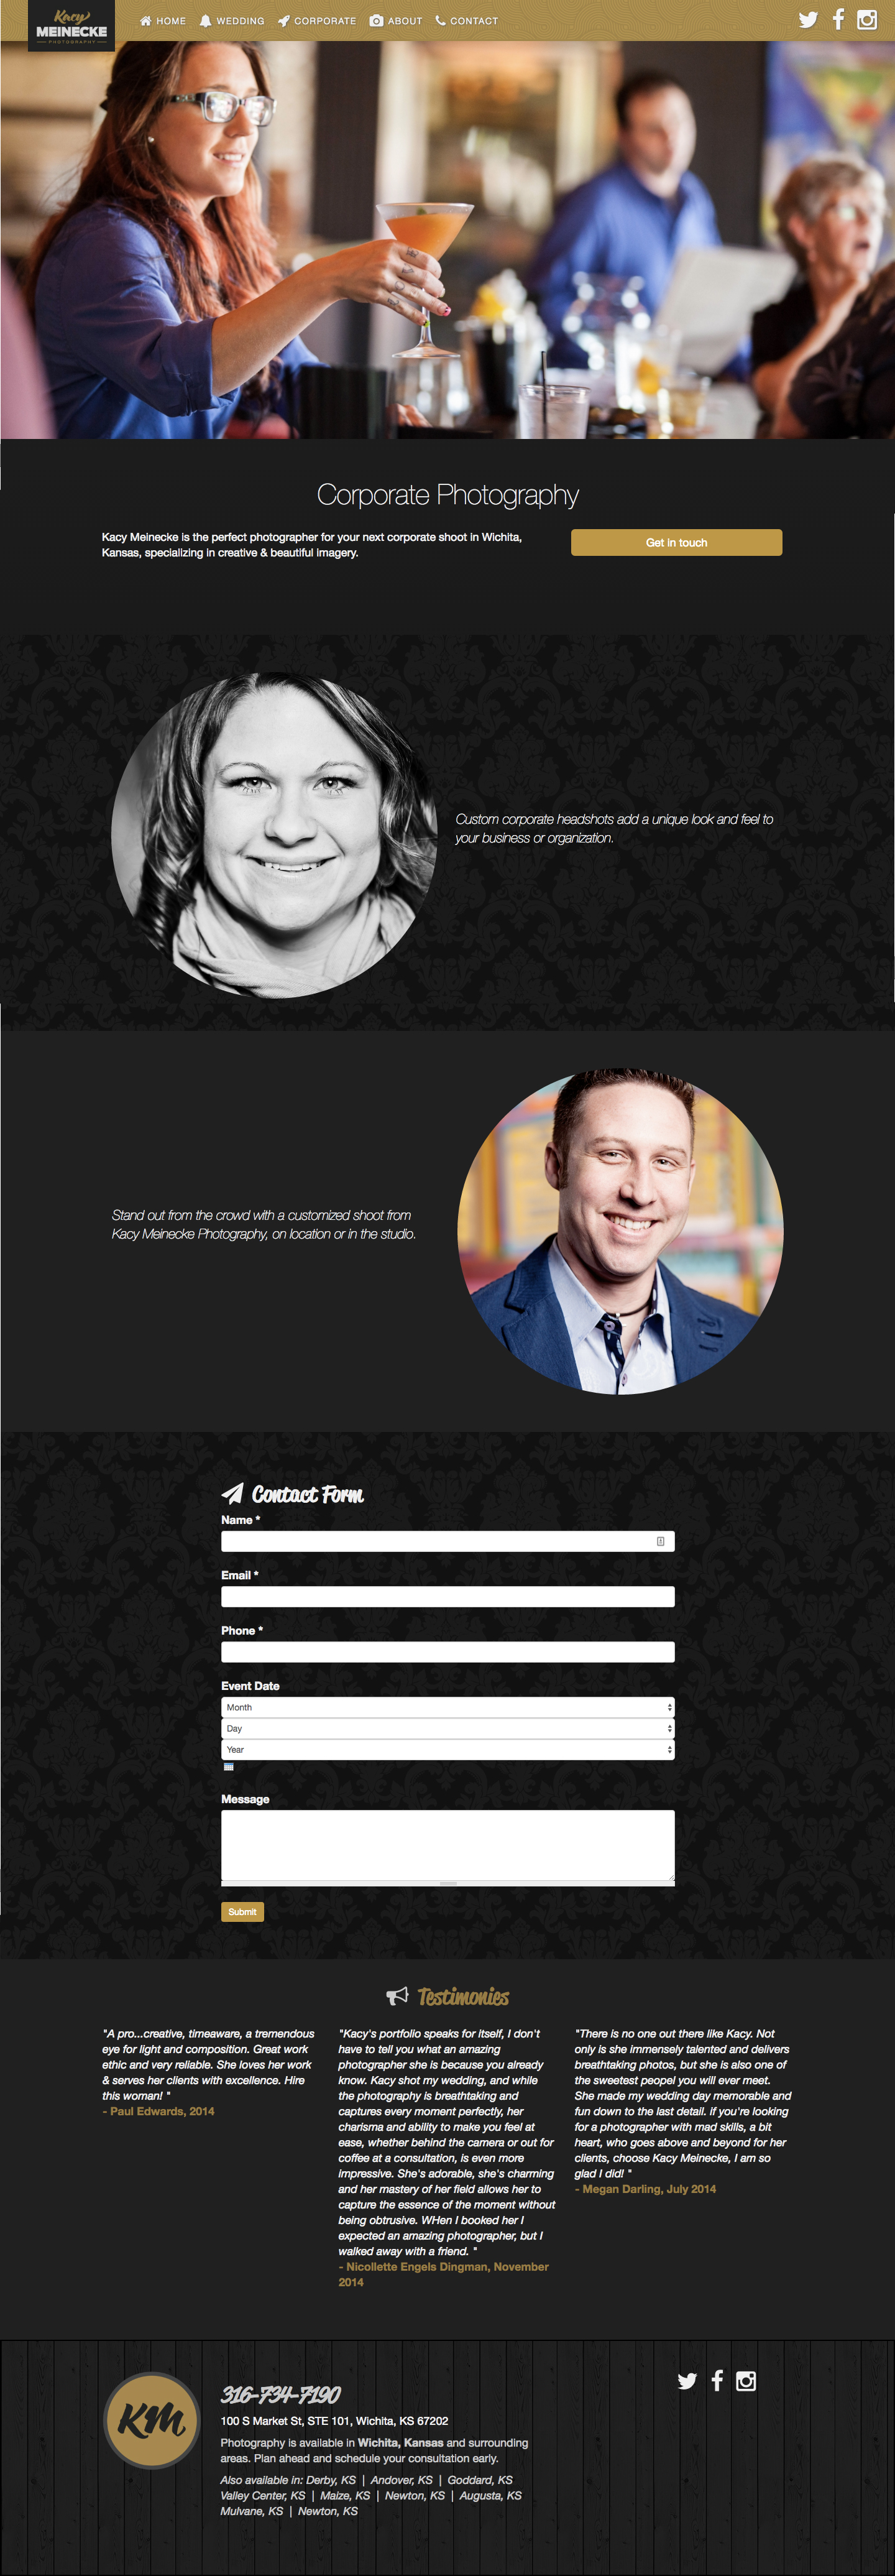 Kacy Meinecke Website Design and Development One Pager